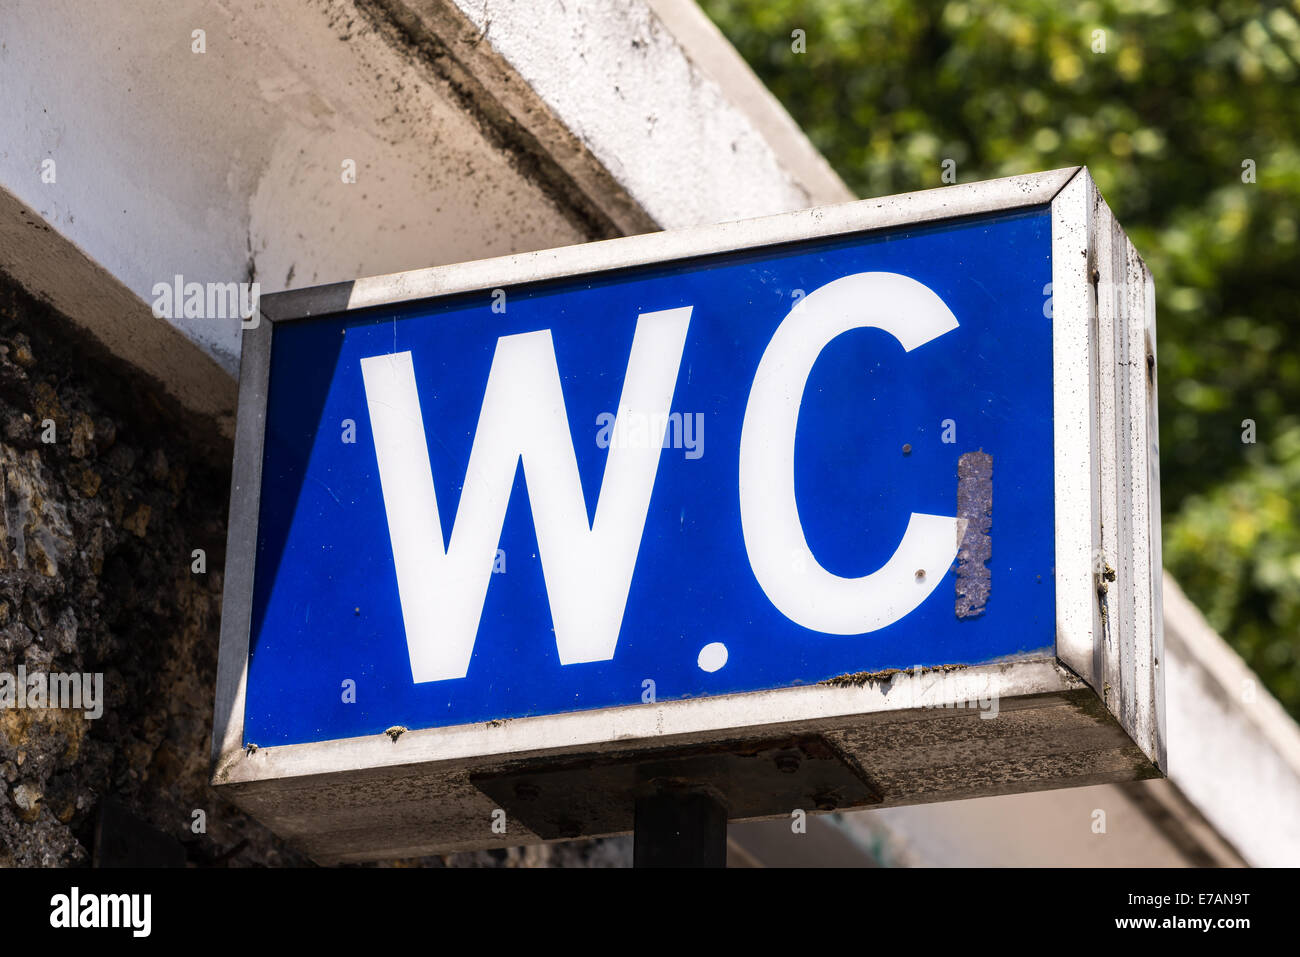 water closet sign stock photos water closet sign stock images alamy